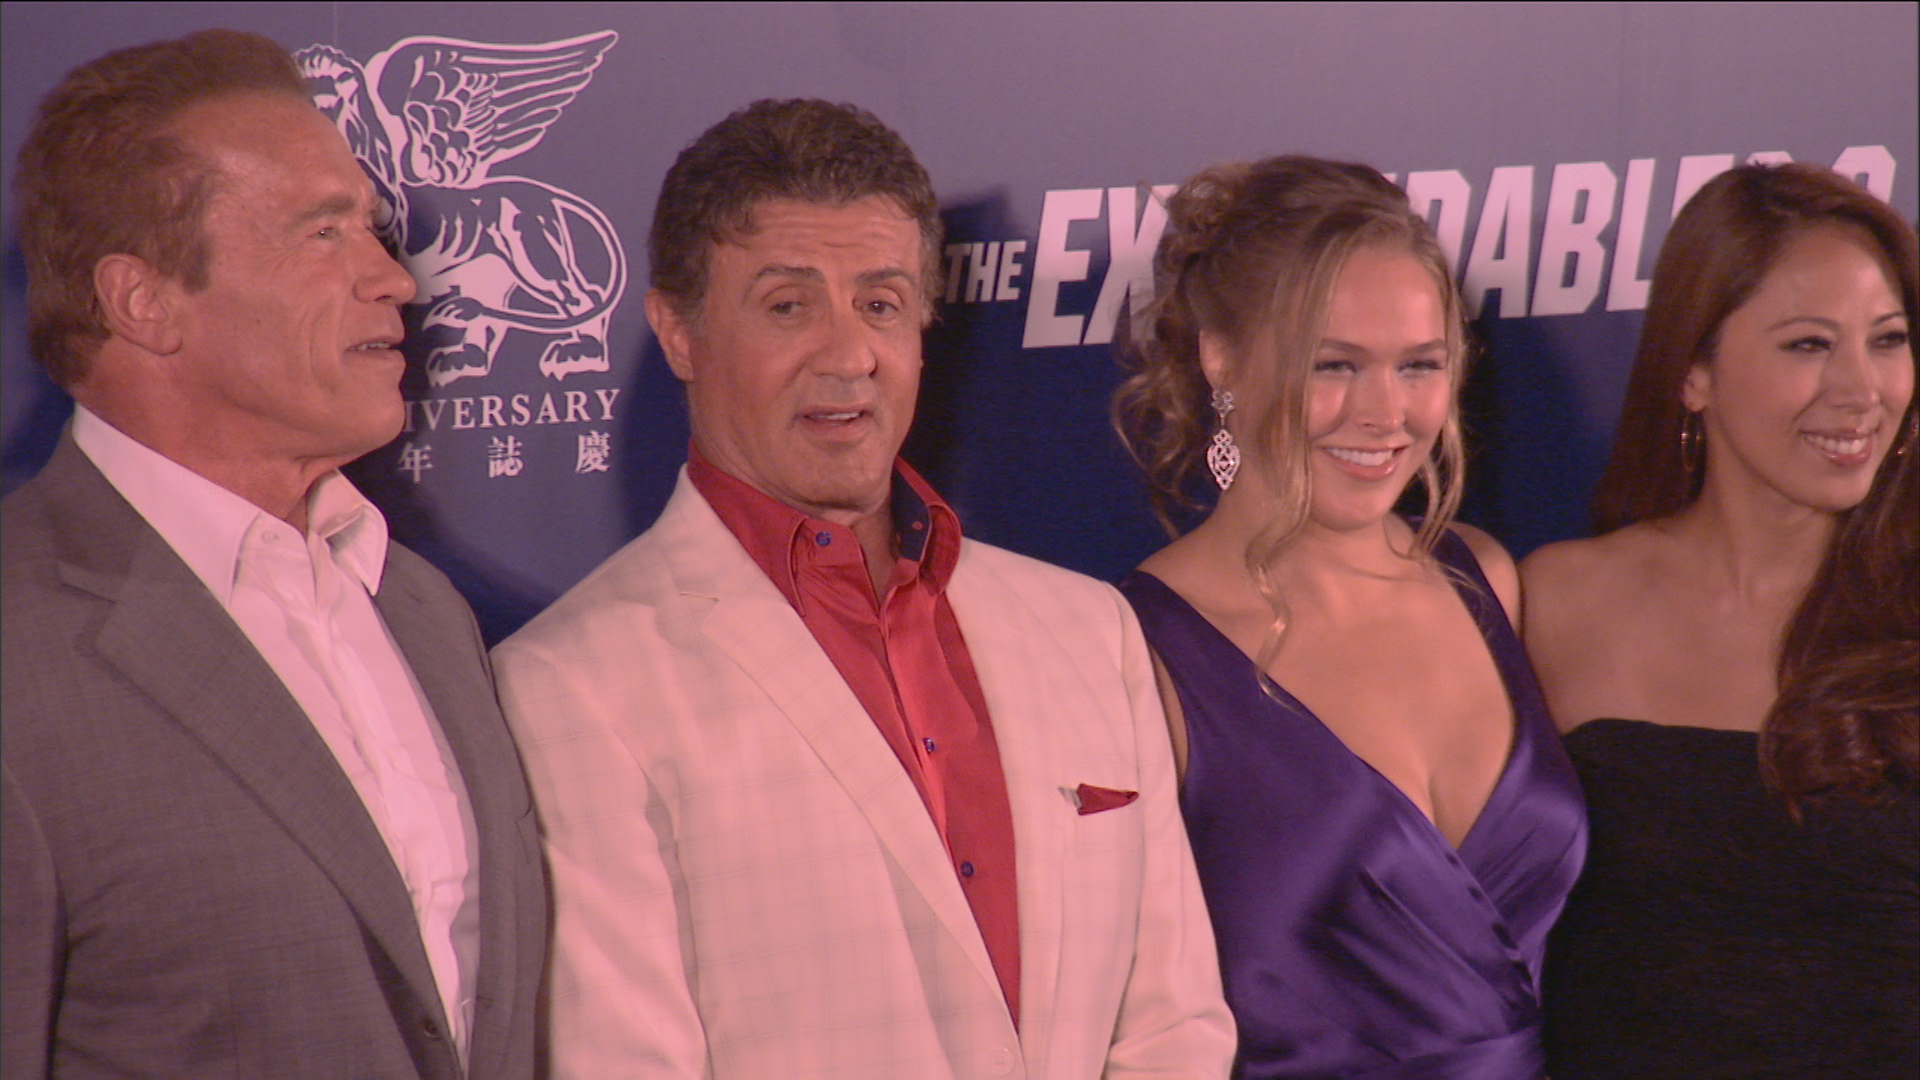 Rousey at the Expendables premiere in Macao